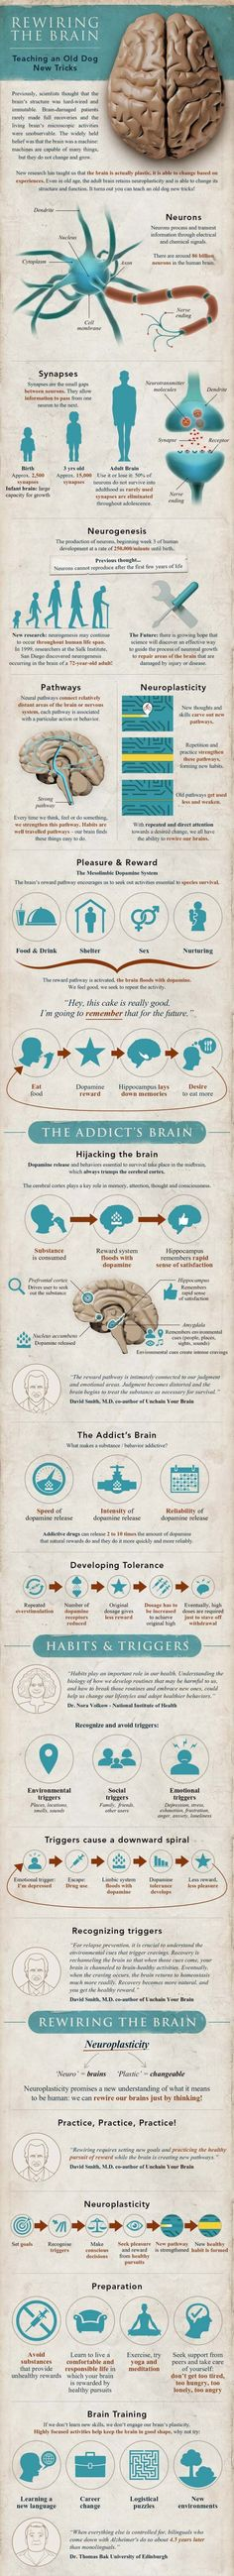 Infographic Introduction to Neuroplasticity and Cognitive Therapy ~ ~ Did you know you can rewire your brain? Neuroscientific breakthroughs are revealing fascinating new truths about how we can control our brains to create new positive neuropathways Brain Health, Mental Health, Guter Rat, Brain Science, Life Science, Computer Science, Therapy Tools, Trauma Therapy, Brain Injury